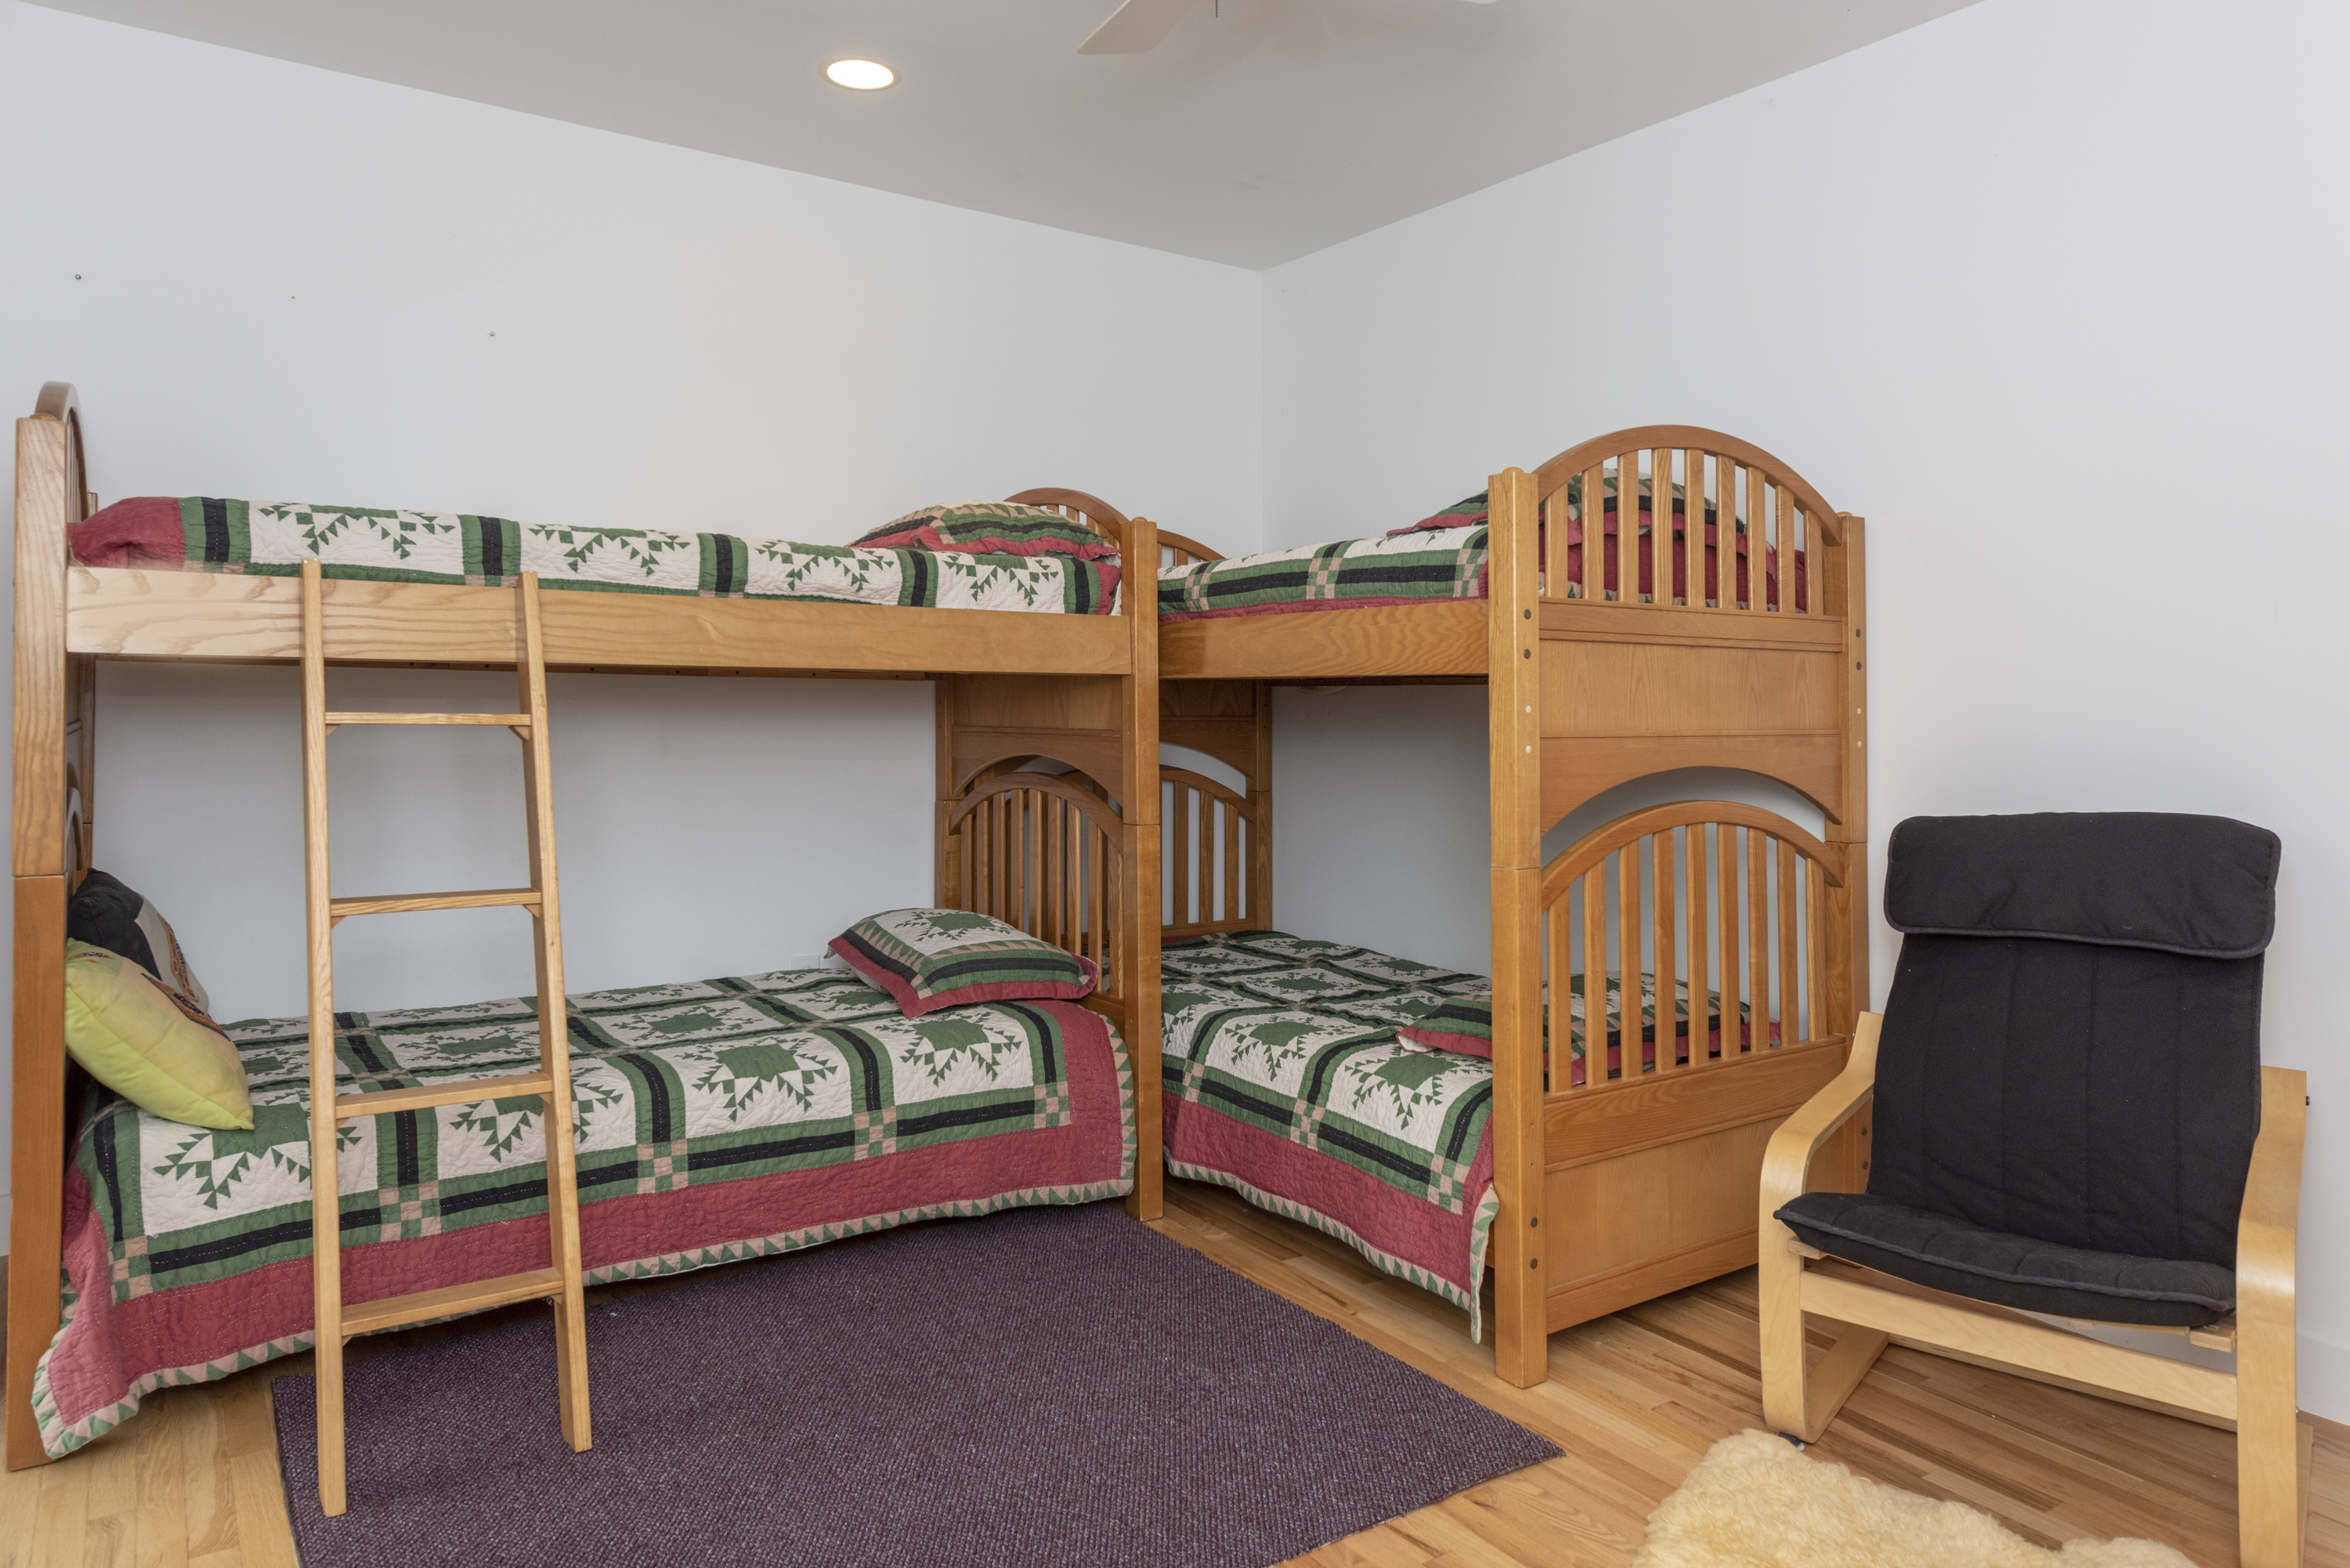 2 sets of twin bunks beds with a flat screen TV for enjoyment!